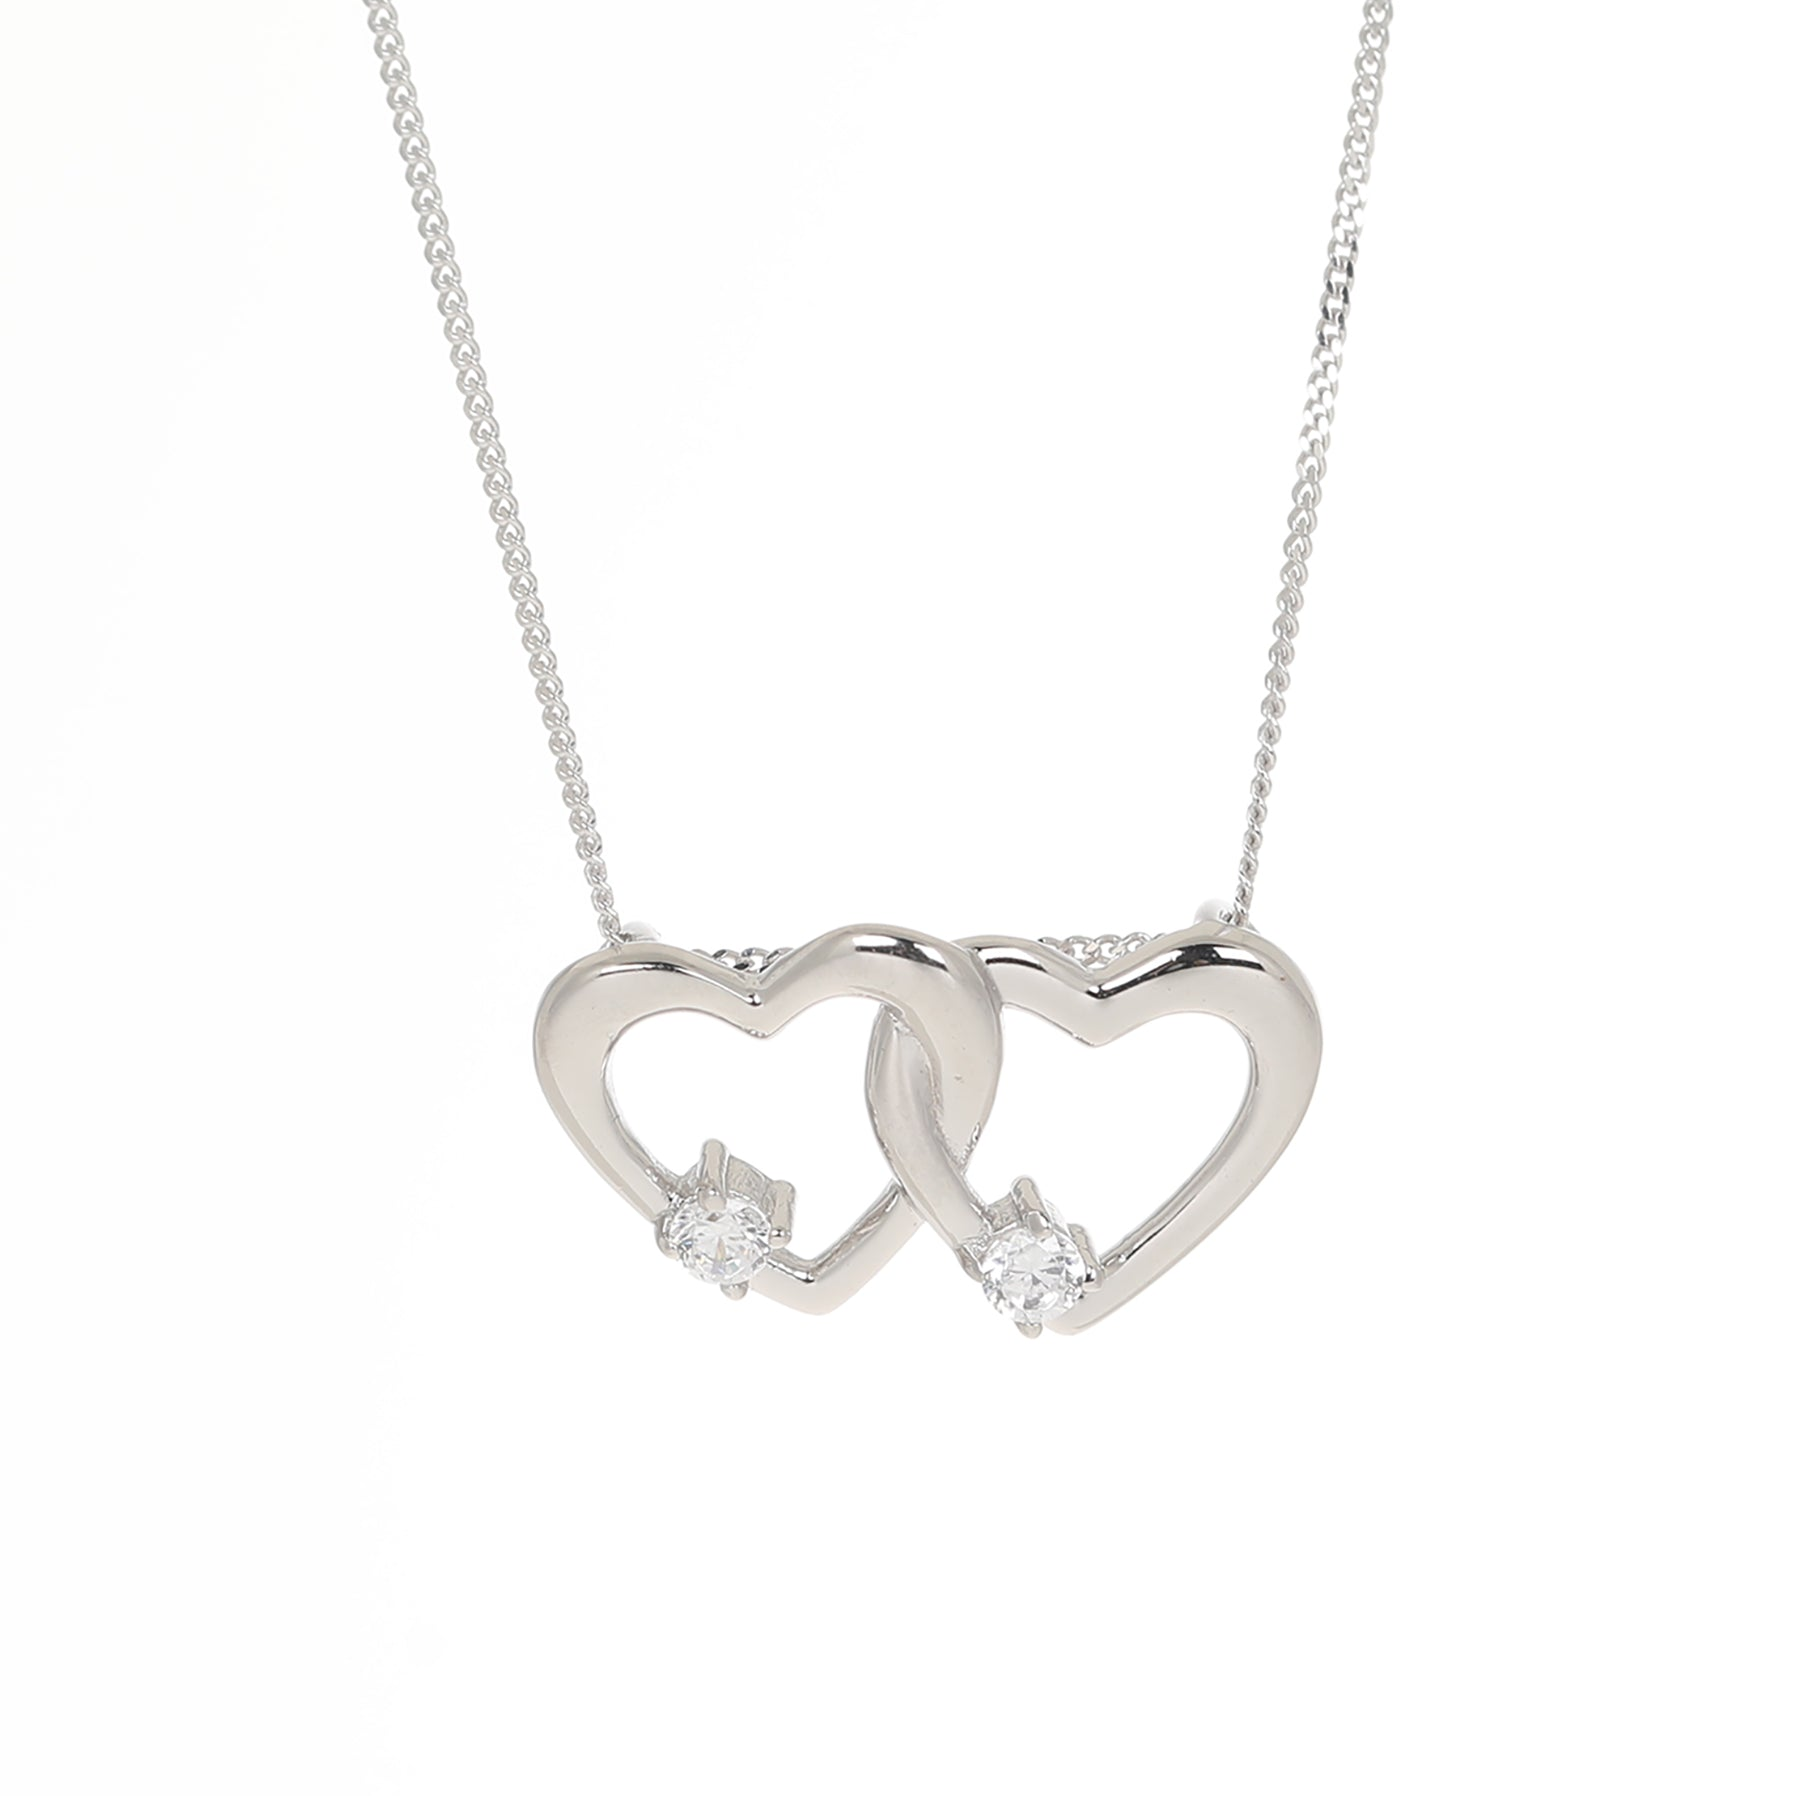 Twin hearts pendant